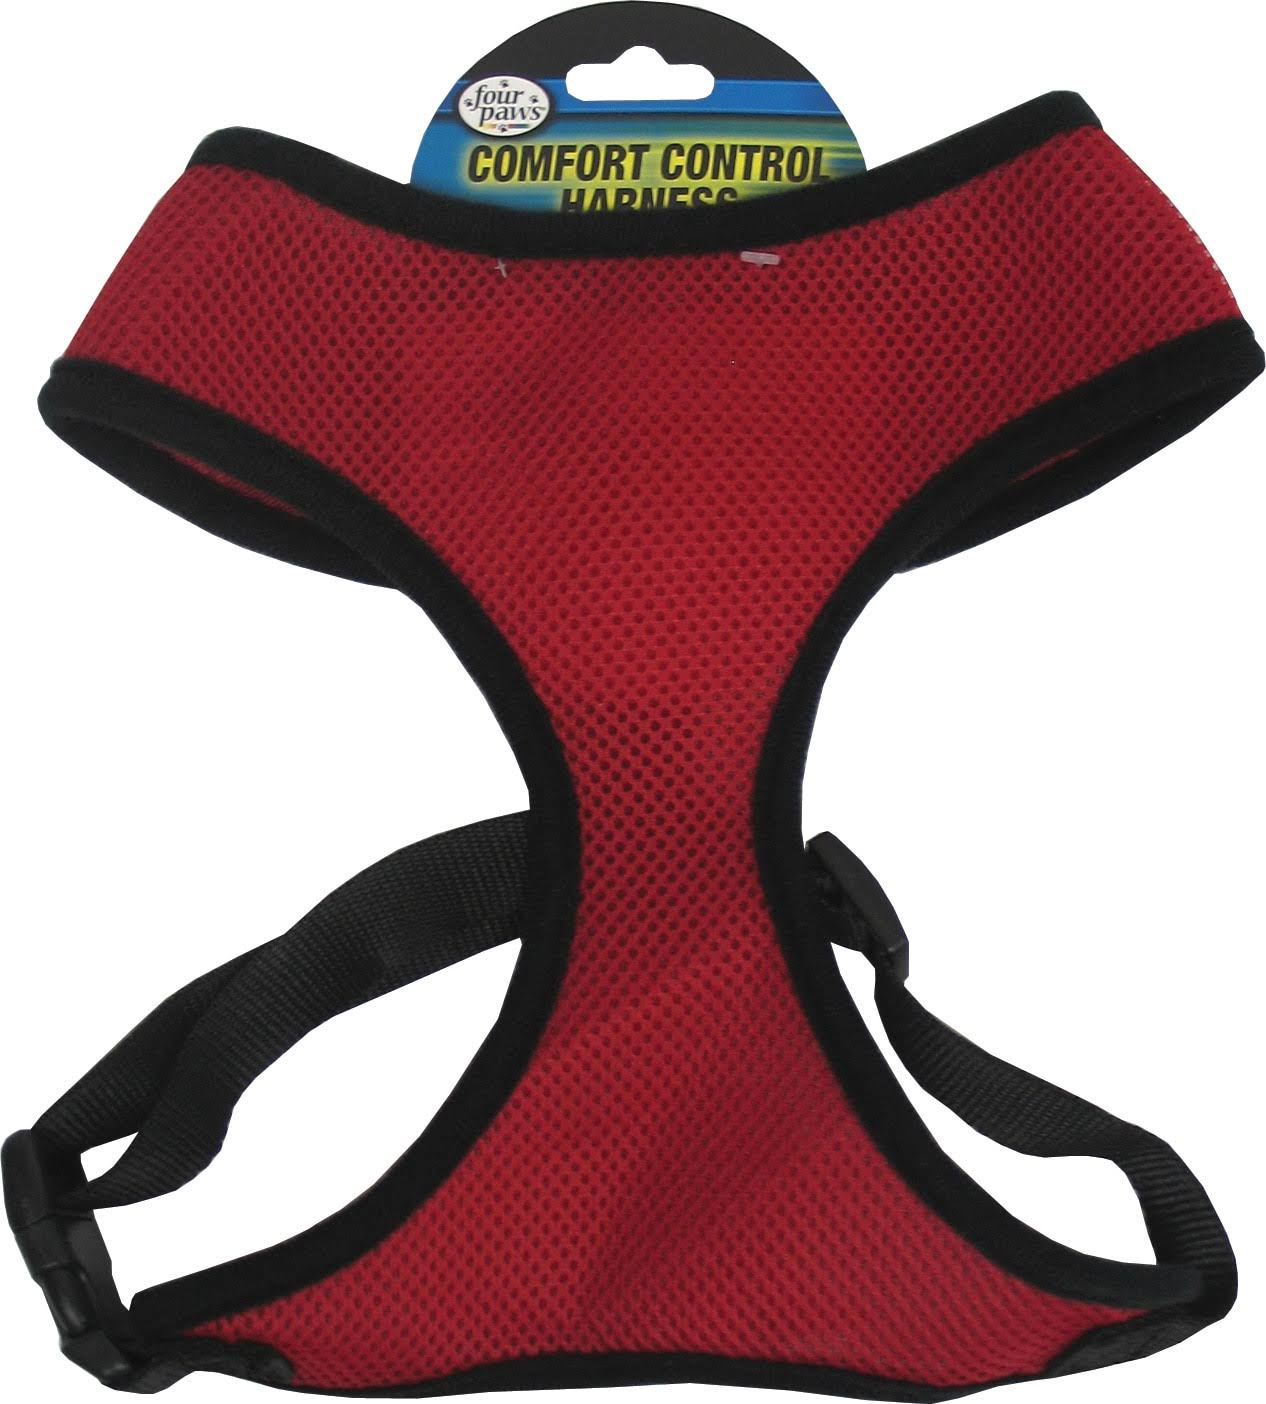 Four Paws Comfort Control Harness - Red - Small